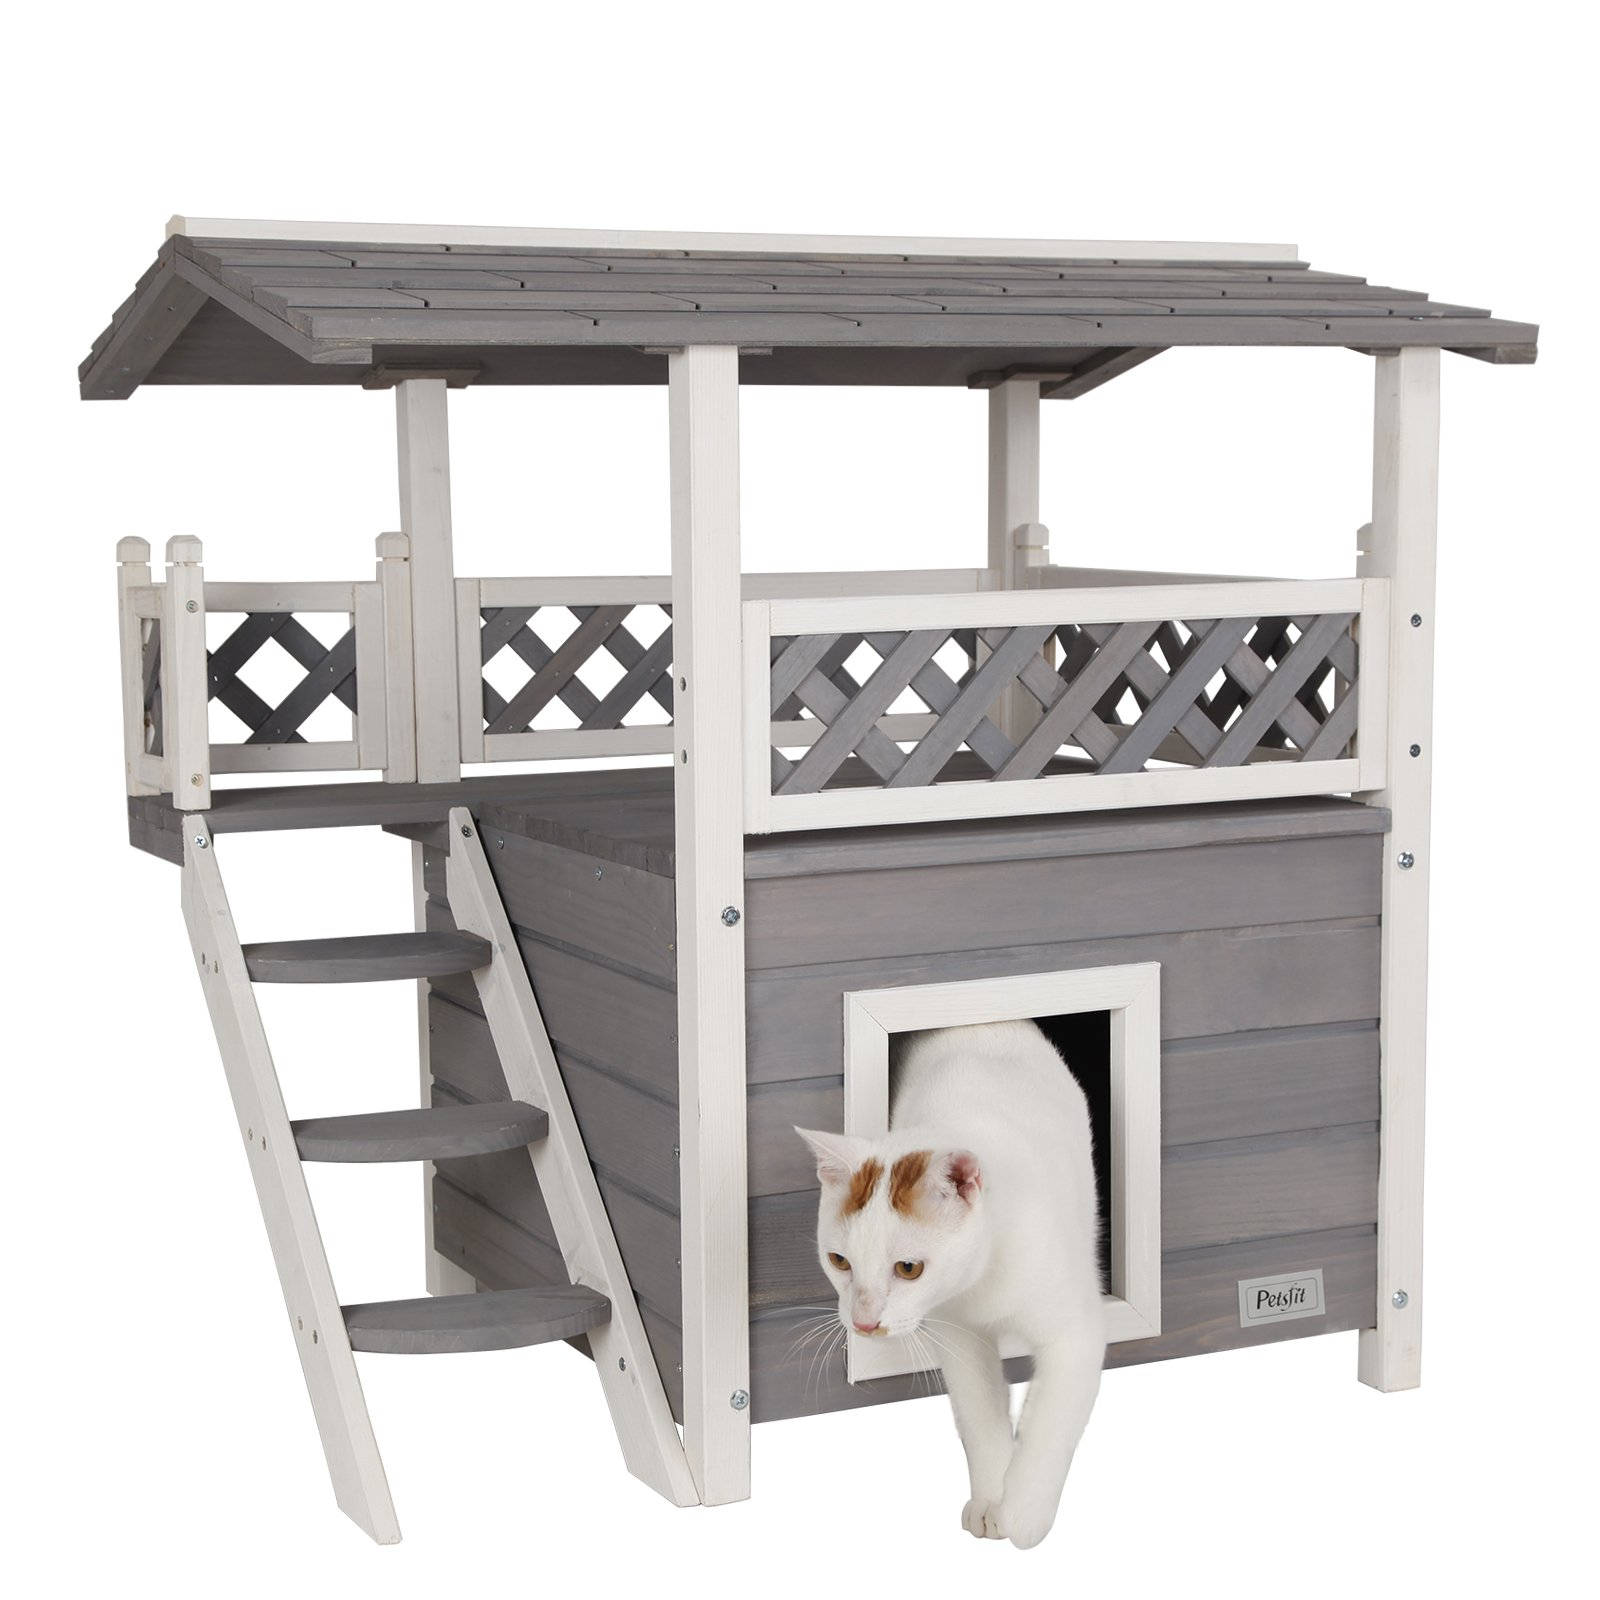 Petsfit Indoor Cat House Cat House With Stairs And Balcony Small Animal Animal Shop